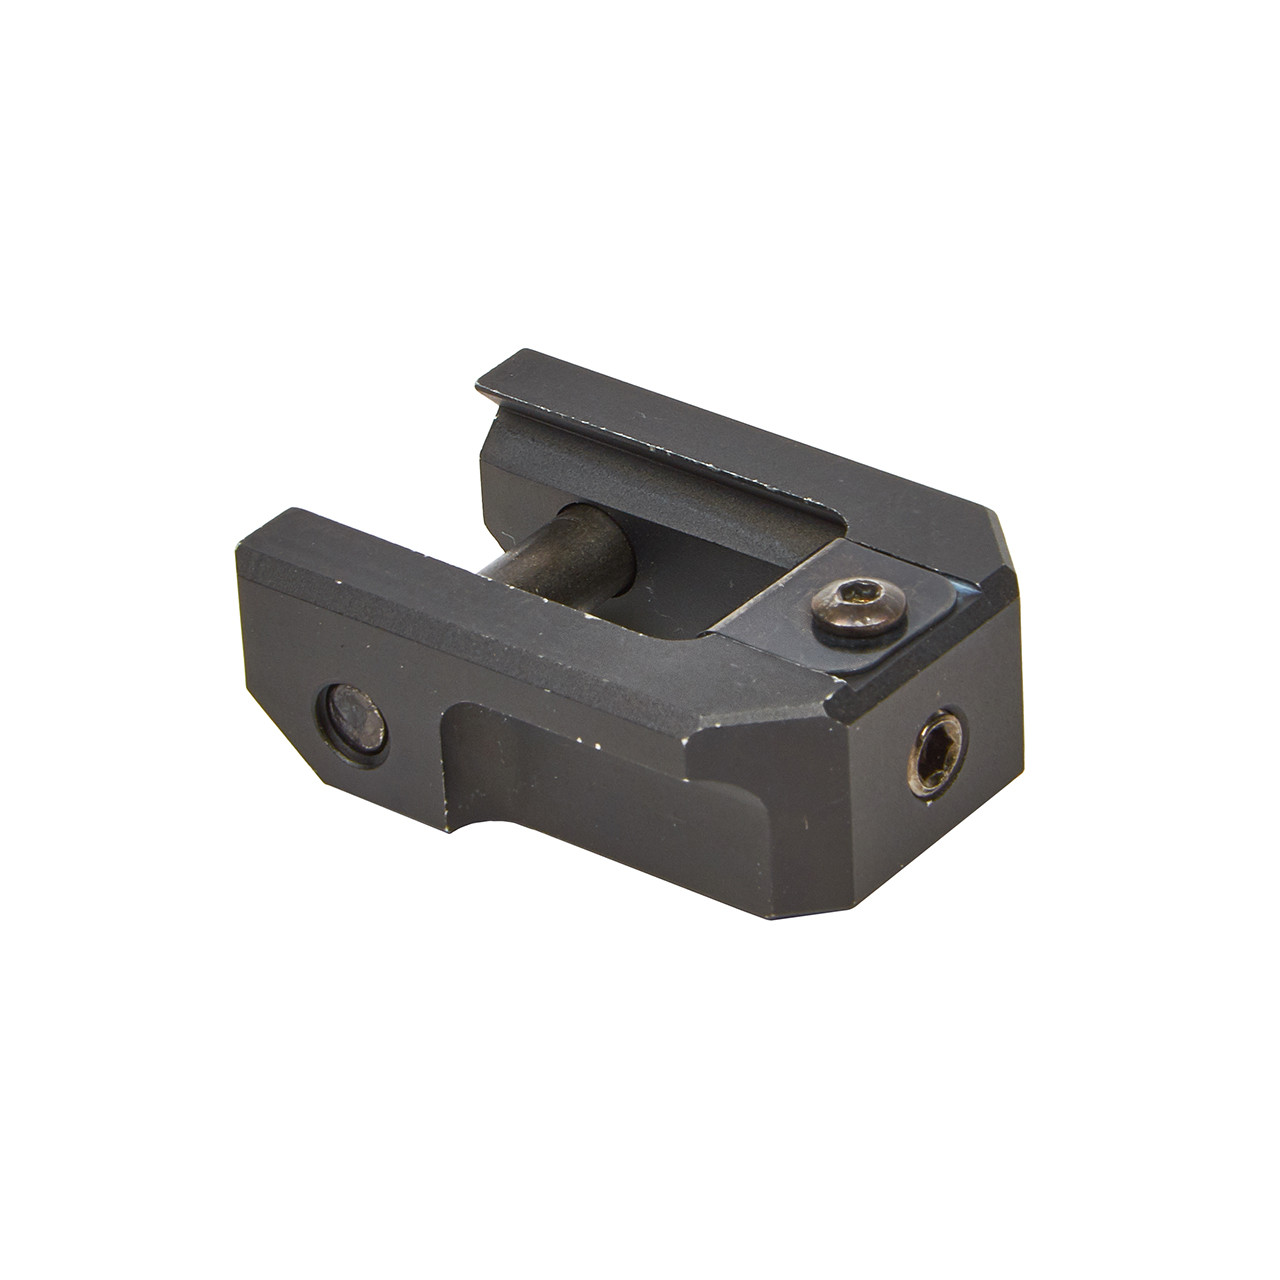 50787 C CLAMP KIT FOR AIMPOINT GOOSENECK PICATINNY CARRY HANDLE